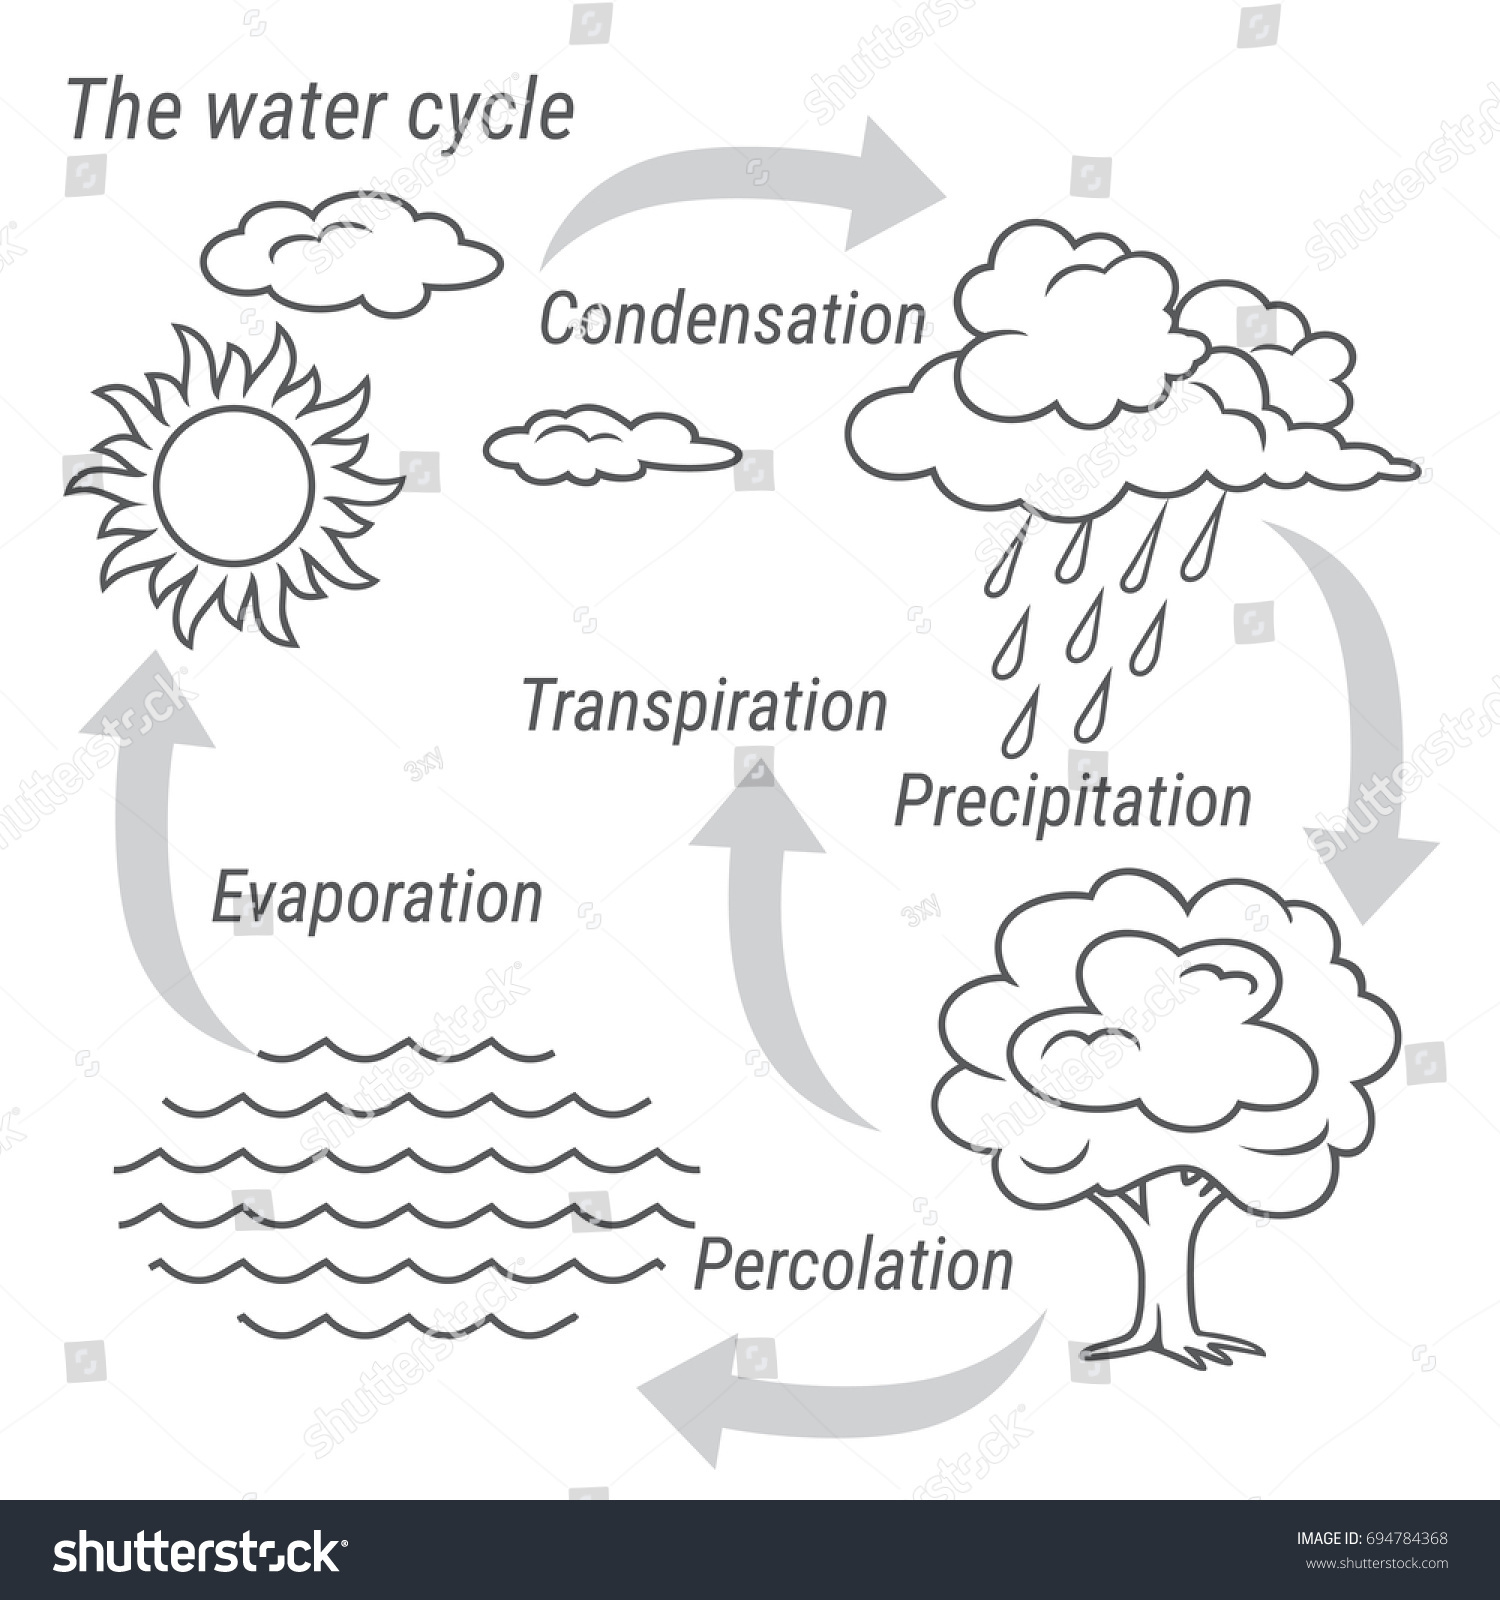 stock vector vector schematic representation of the water cycle in nature illustration of diagram water cycle 694784368 definition for water cycle diagram timeline for project management biocycle wiring diagram at arjmand.co